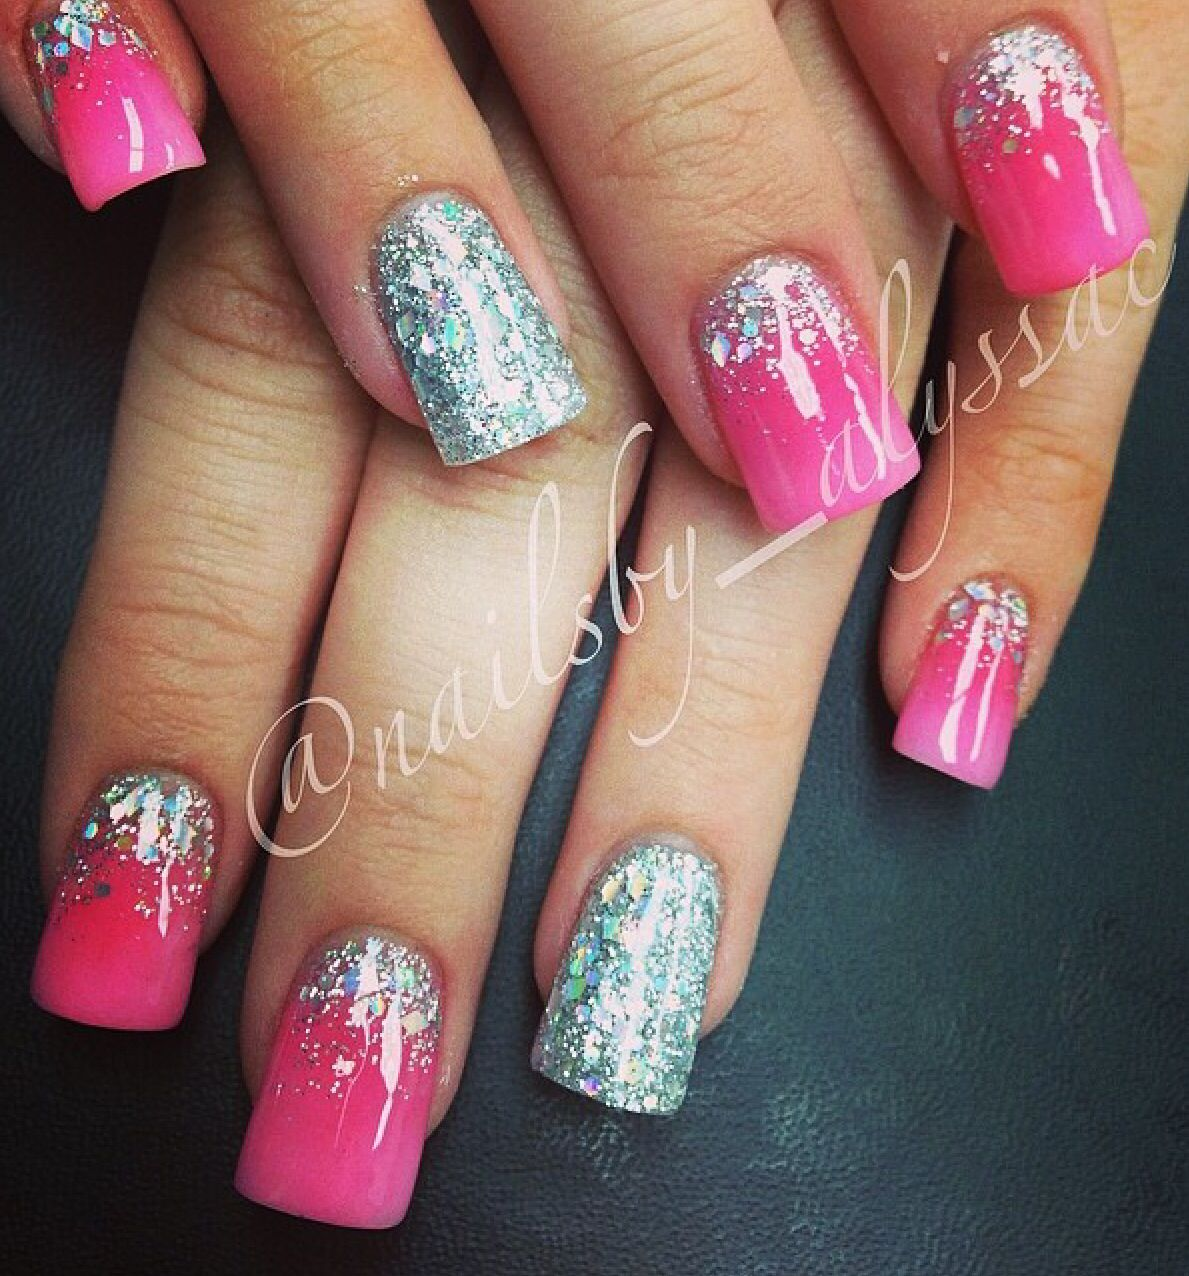 Pink and silver nails - Pink Acrylic Ombr Faded Silver Glitter And Accent Nail Nails Done By Alyssa Cartwright Follow